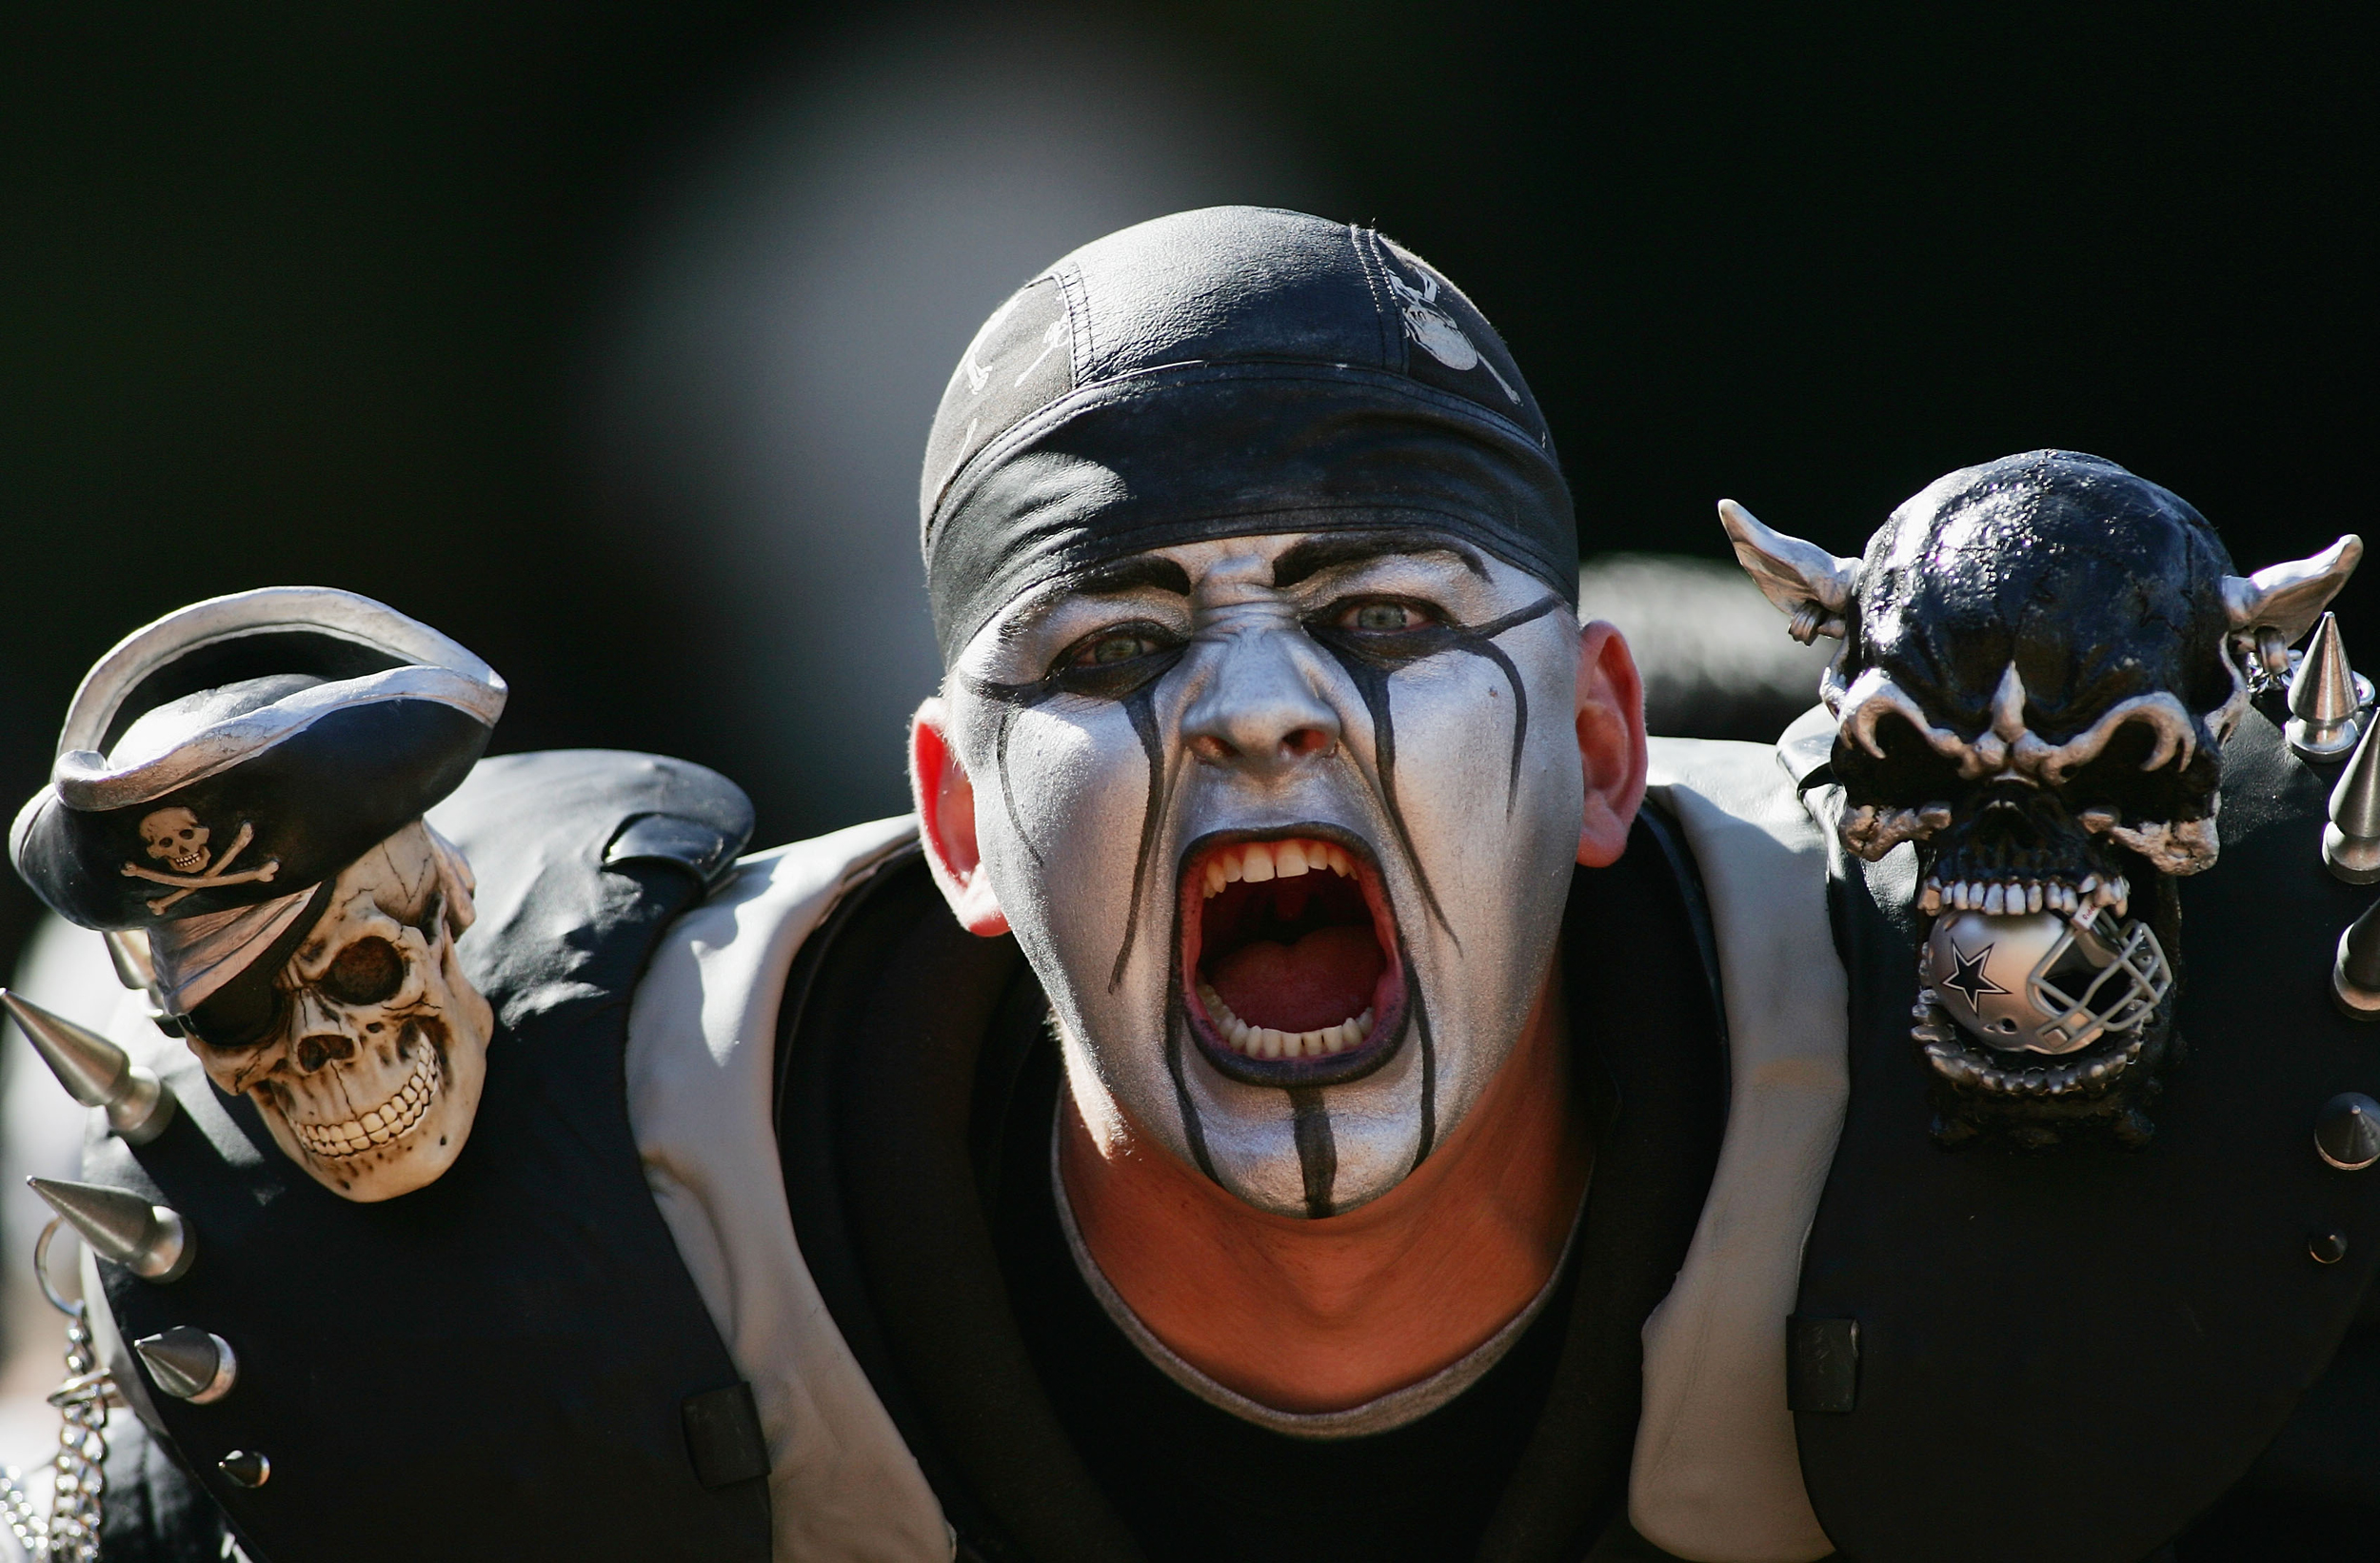 A fan of the Oakland Raiders cheers during the game against the Dallas Cowboys on October 2, 2005 at McAfee Coliseum in Oakland, California.